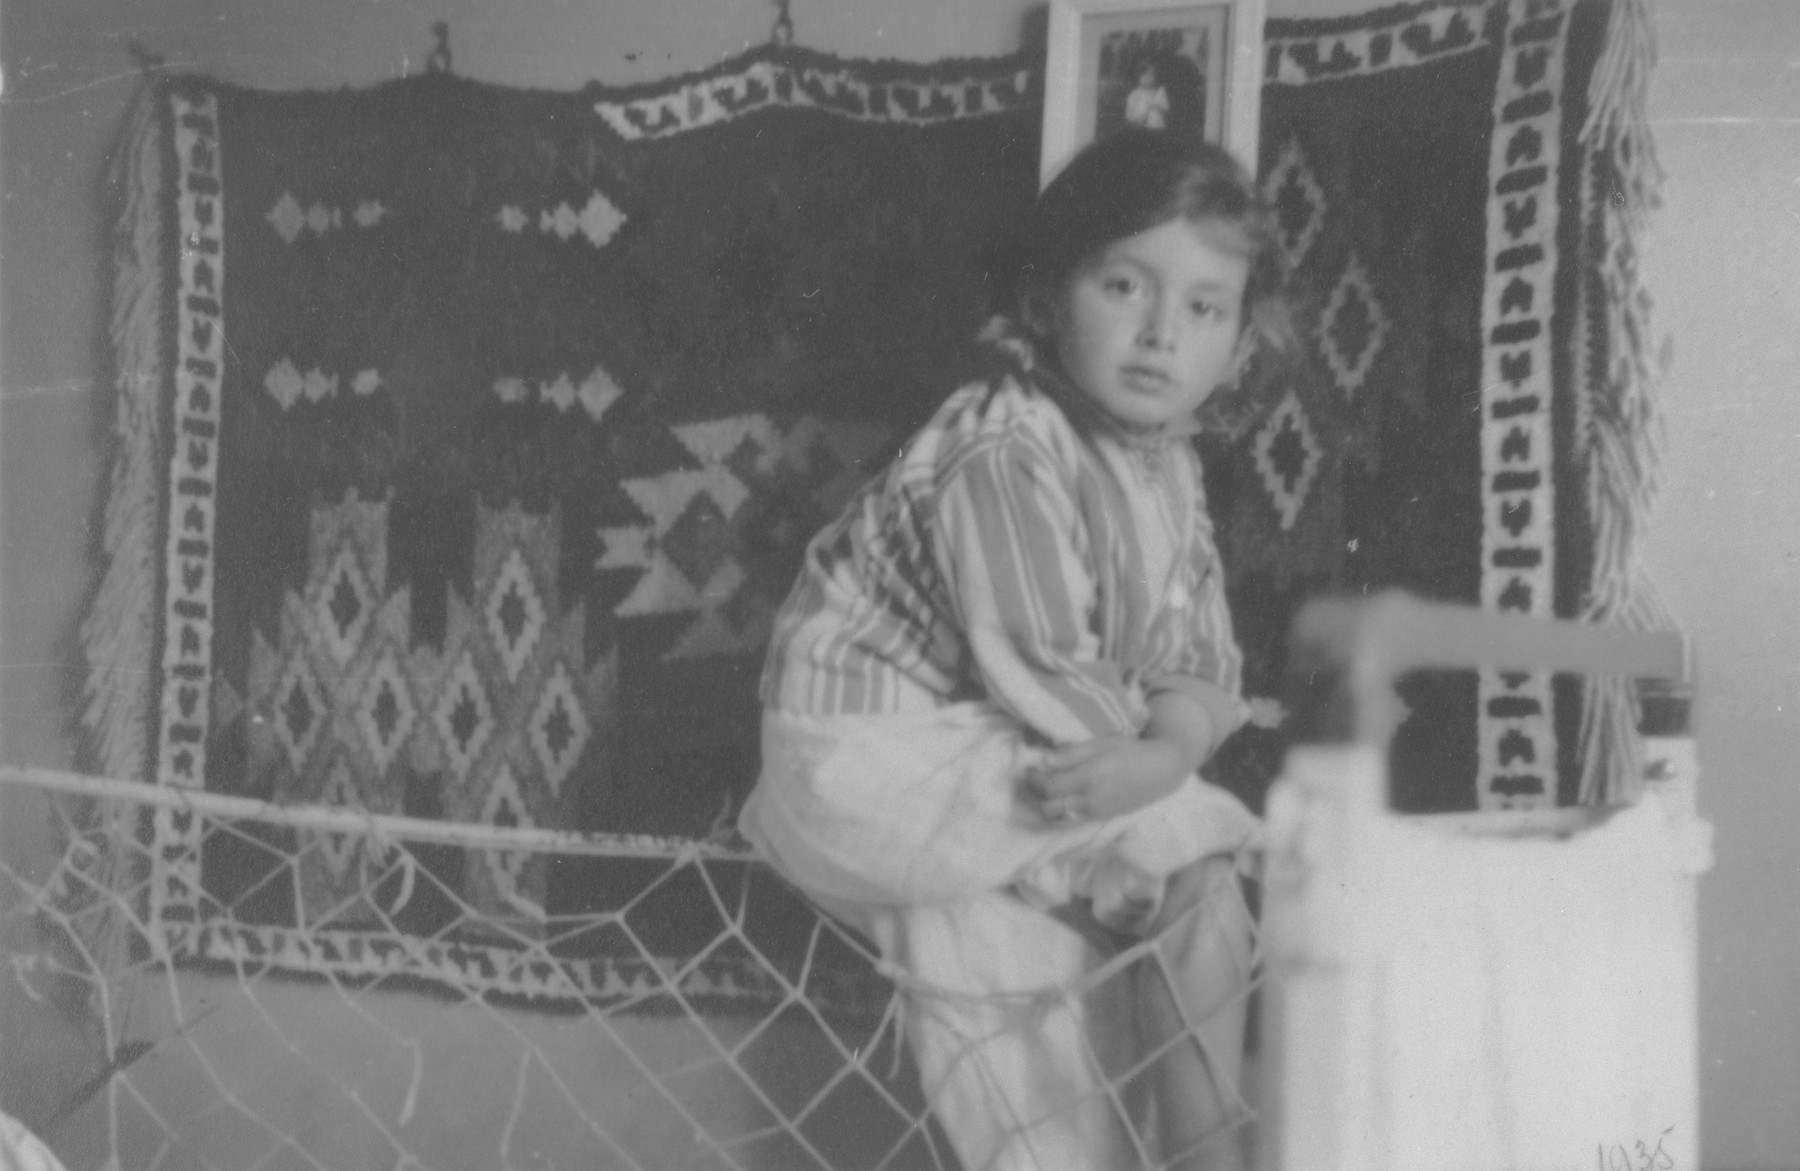 Portrait of a young Jewish girl, Lida Kleinman sitting in her room in Lacko, Poland.